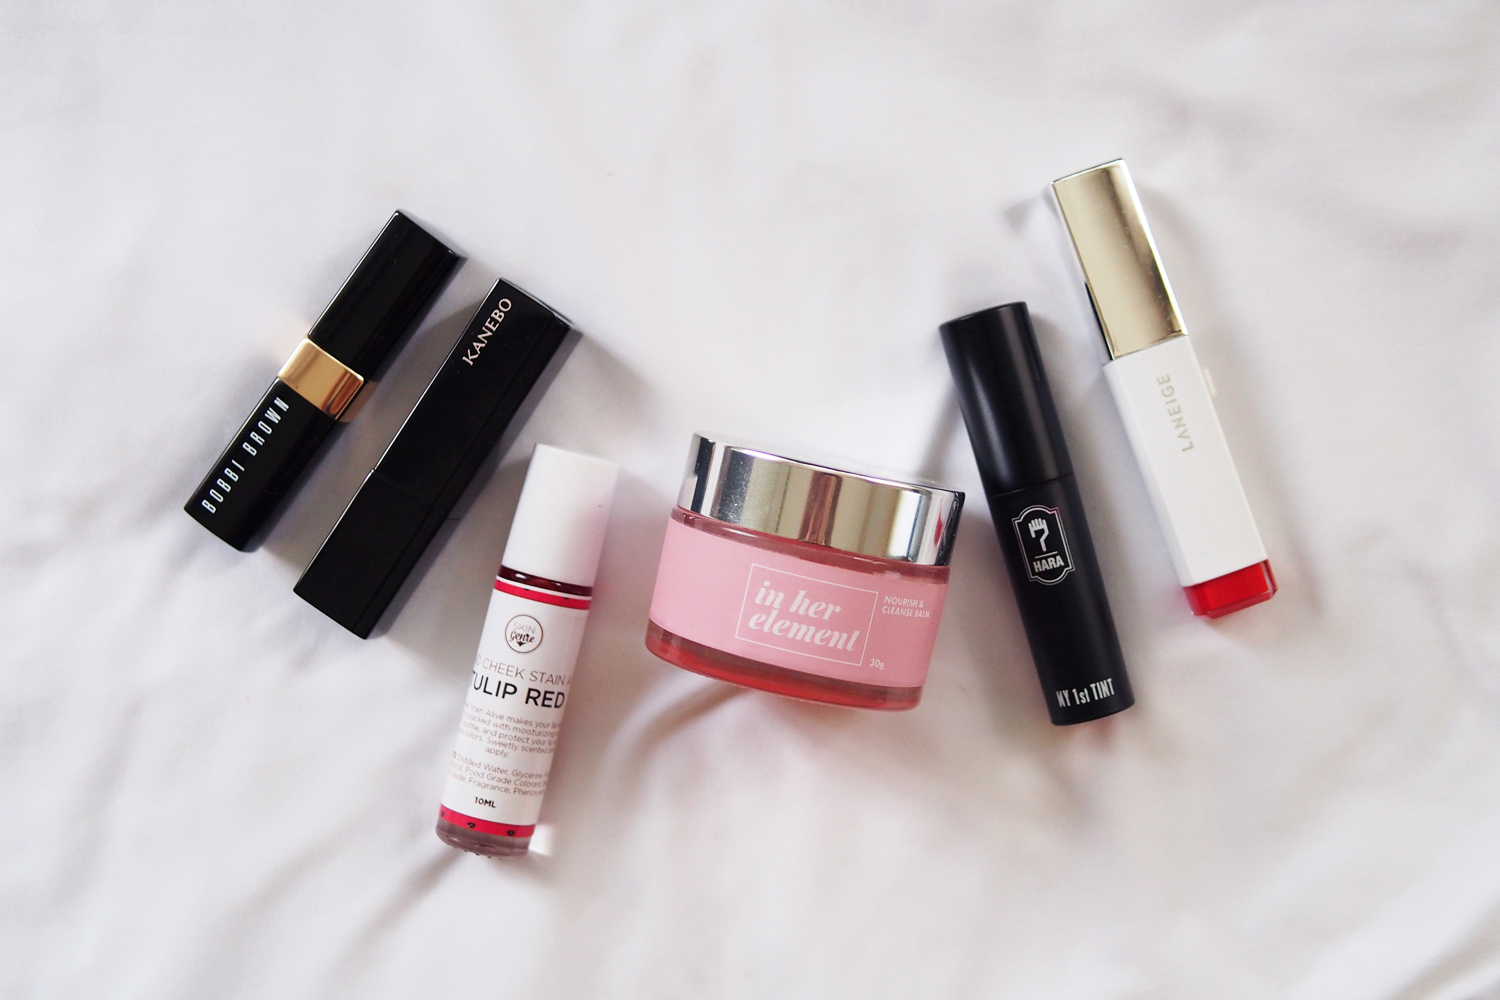 Bobbi Brown Nourishing Lip Color  in Island Pink (P1,400),  Kanebo Moisture Rouge in 05 Core Red  (P2,100), Skin Genie Lip and Cheek Stain Alive in Tulip Red (P80 via BeautyMNL.com), In Her Element Nourish & Cleanse Balm (P595), 7Hara My 1st Tint in Maple Red (P350 via Althea Korea), Laneige Two-Tone Lip Bar in No.5 Daring Darling (~P1,200)